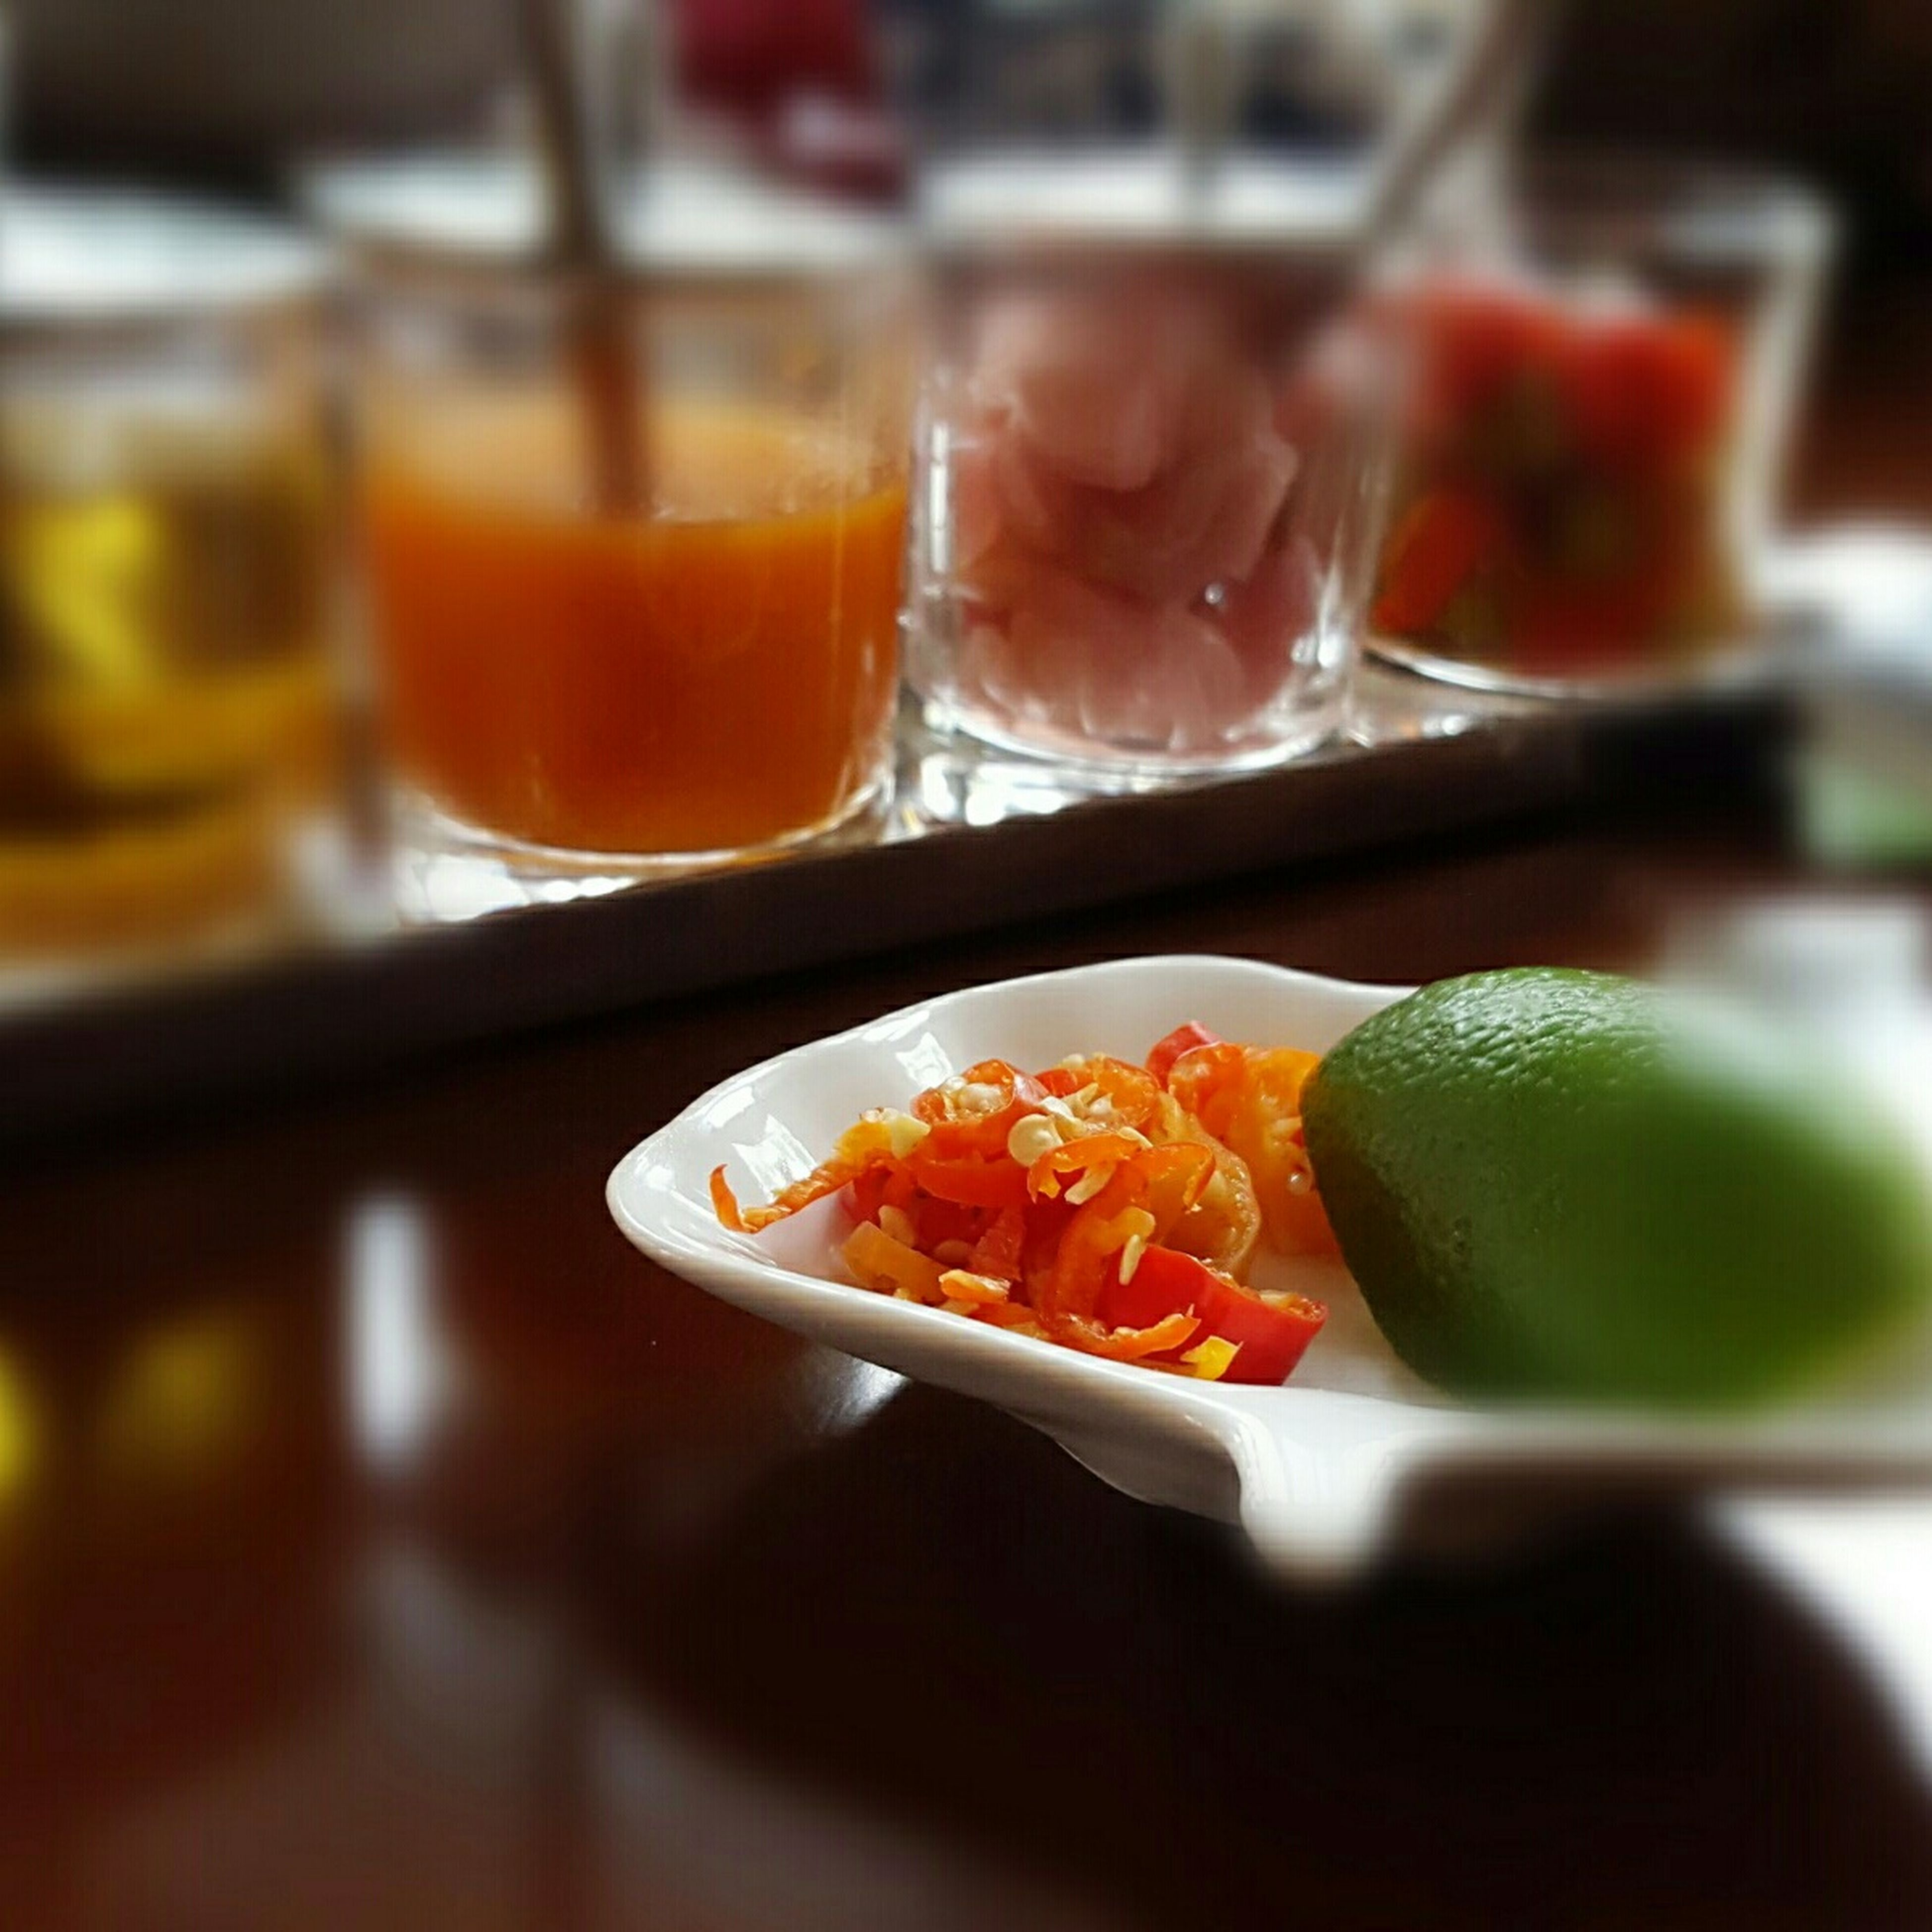 food and drink, food, healthy eating, freshness, indoors, ready-to-eat, serving size, no people, selective focus, indulgence, plate, drink, close-up, day